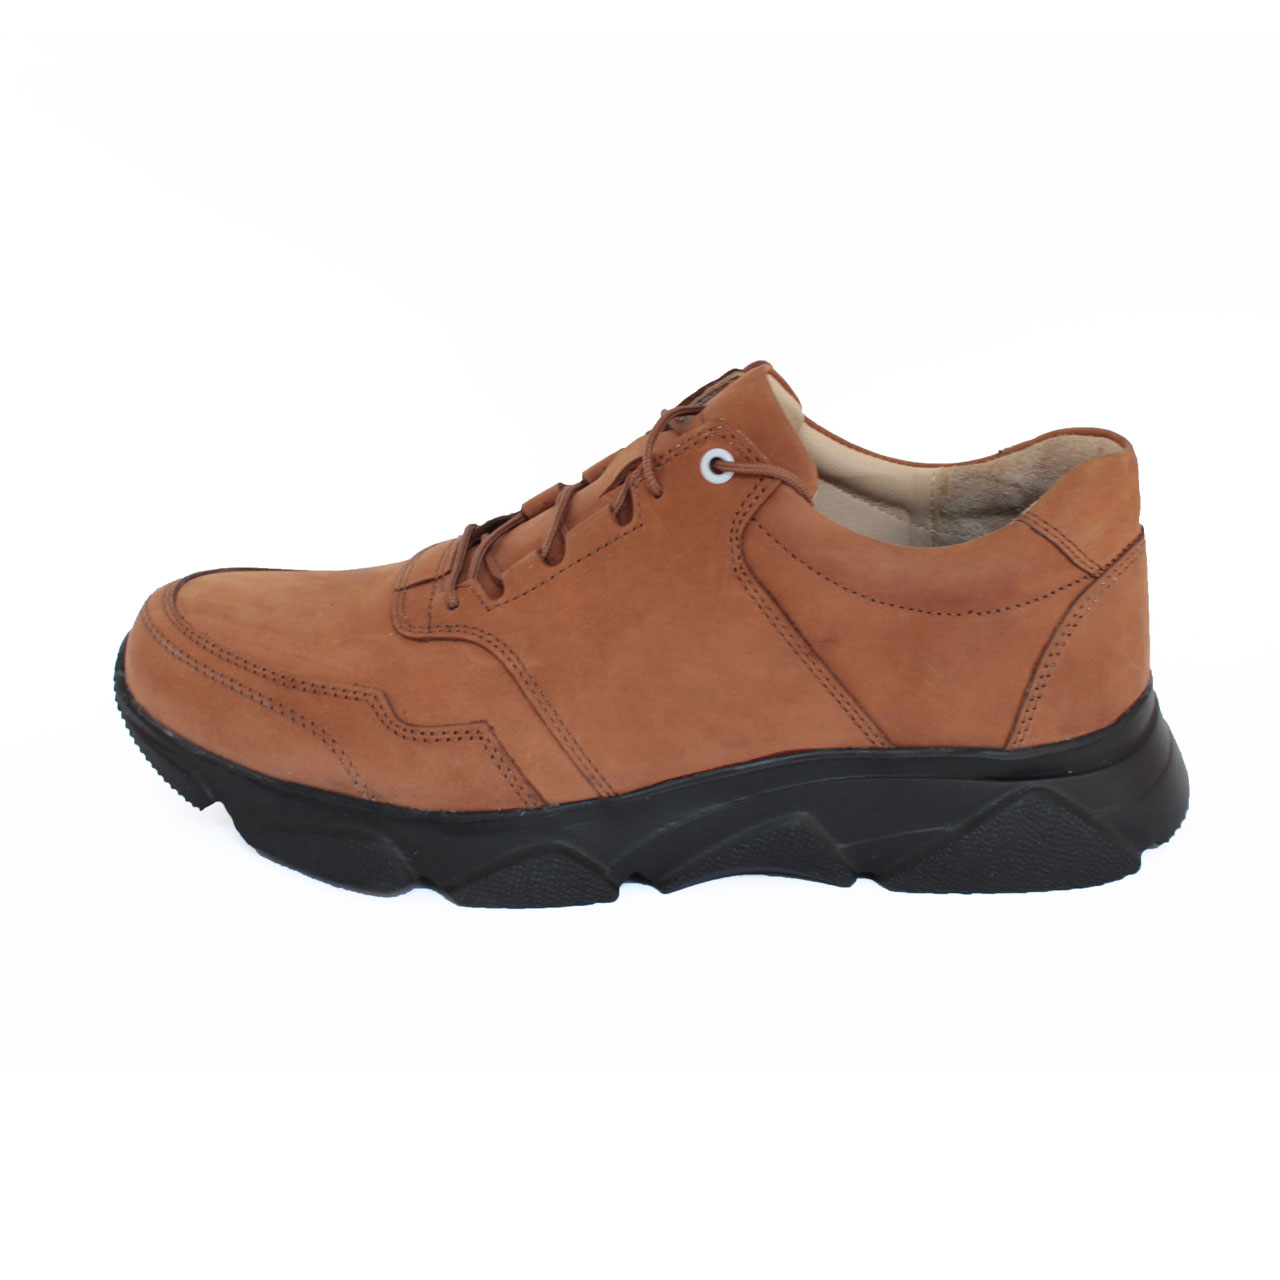 SAINACHARM leather men's casual shoes ,  M107 Model